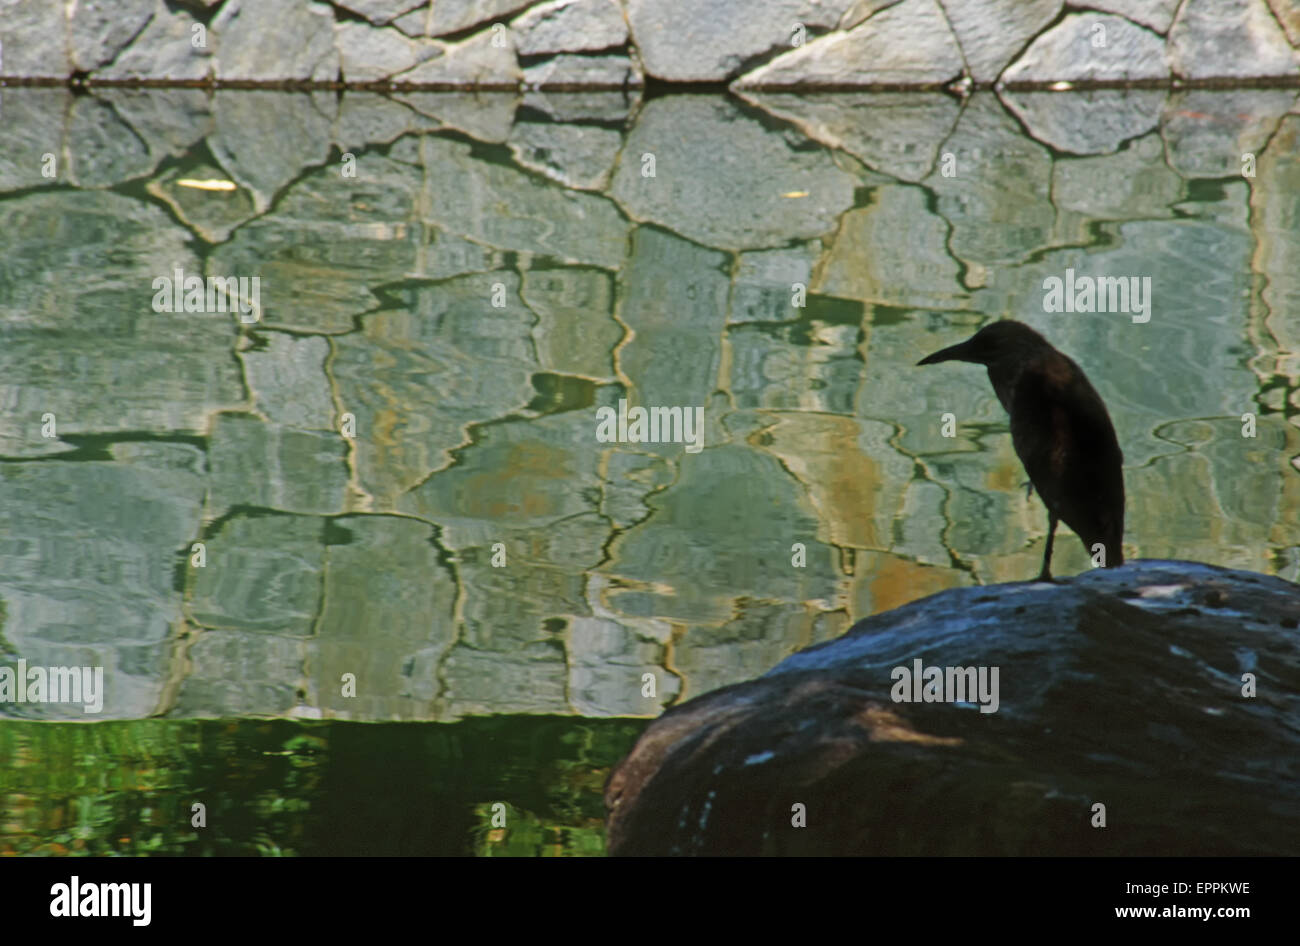 Stone wall and metal heron statue near a reflective pond at the Japanese Garden in the Sepulveda Basin, Los Angeles, - Stock Image